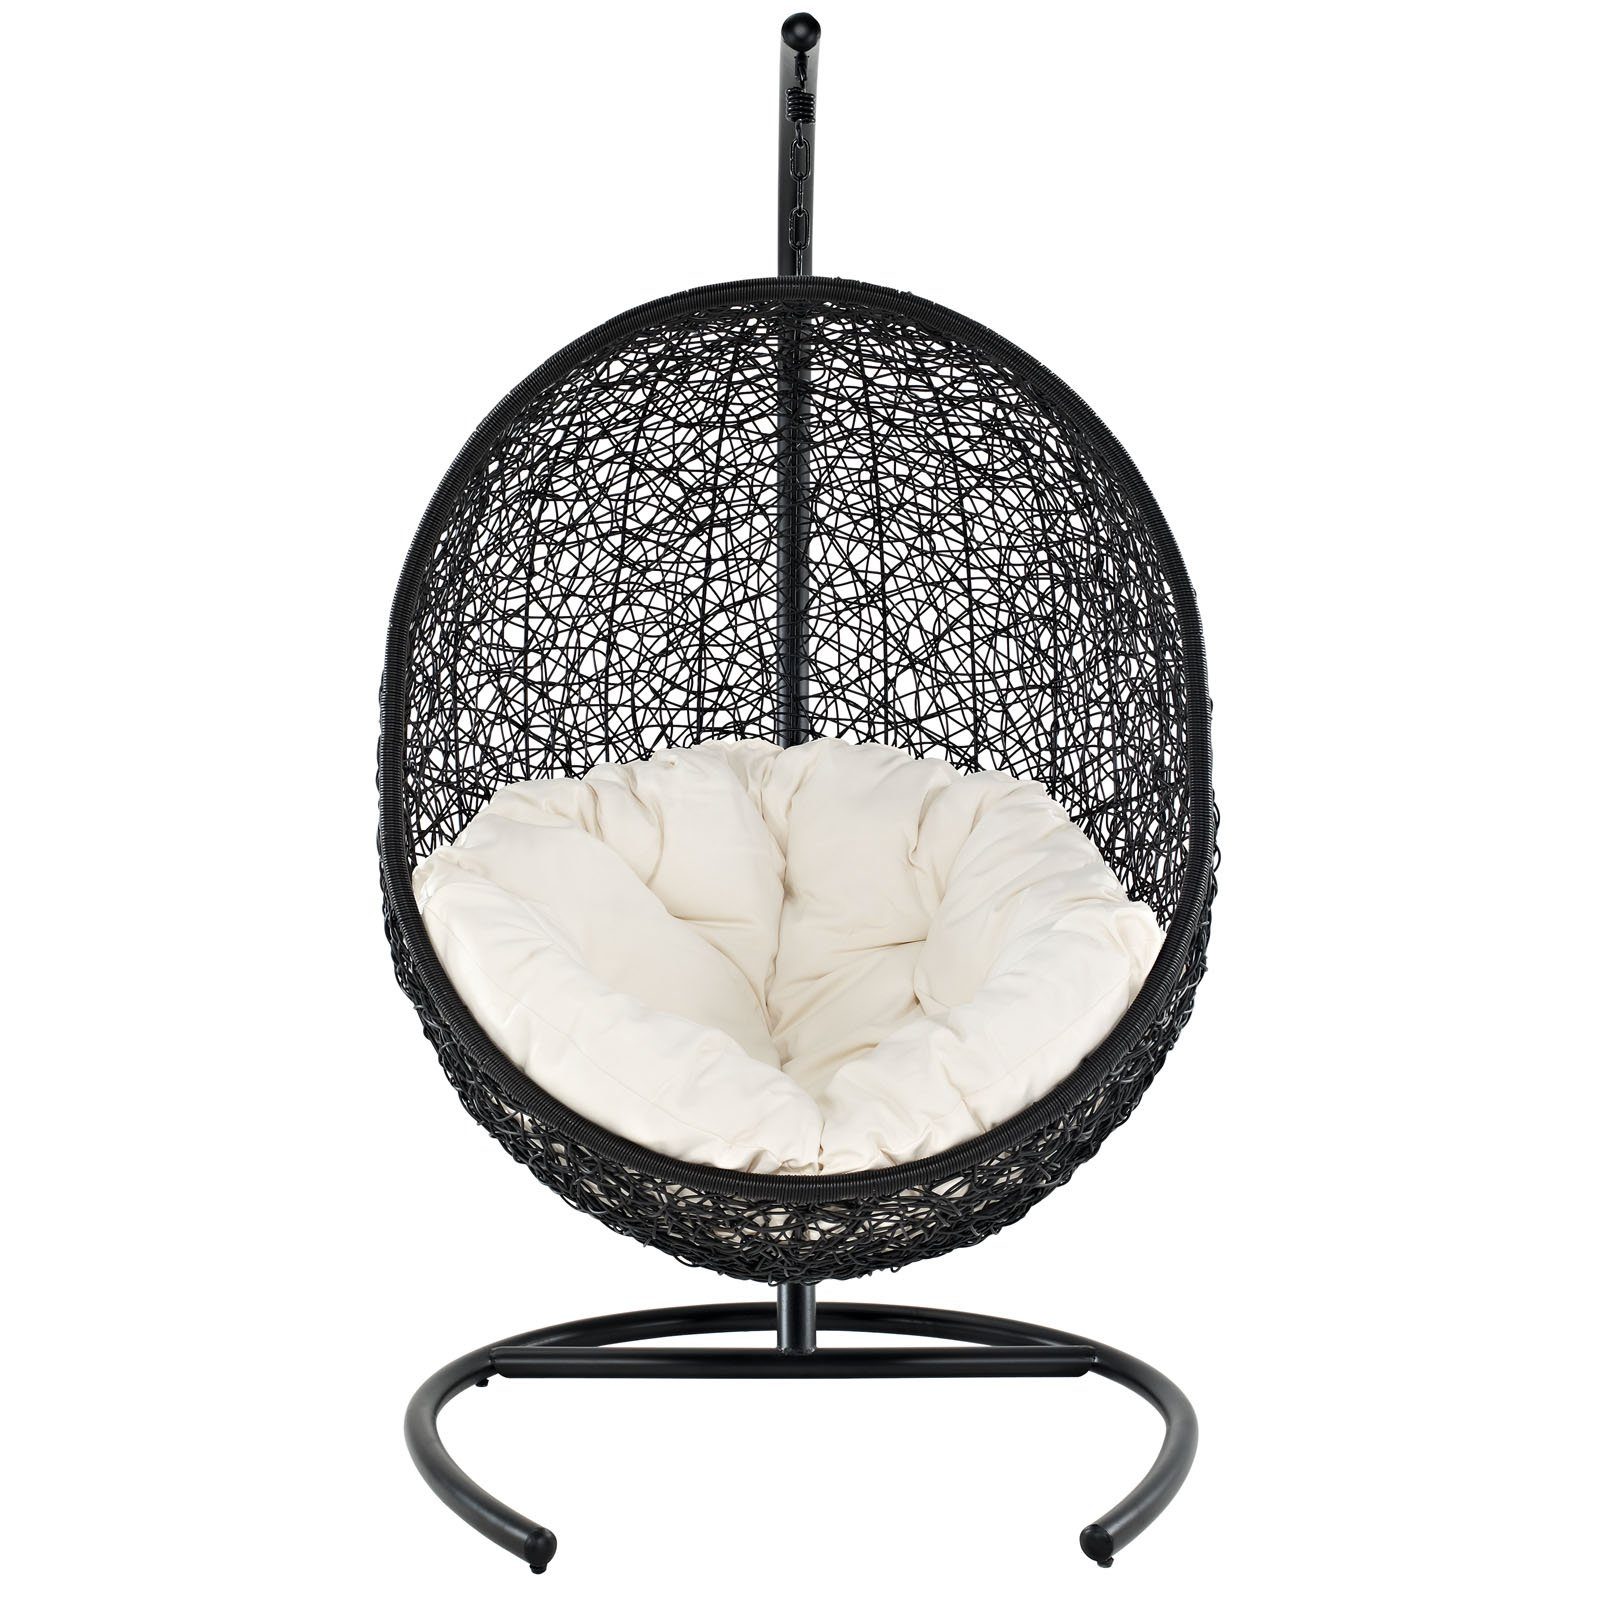 Gentil Amazon.com : Modway EEI 739 Encase Wicker Rattan Outdoor Patio Balcony Porch  Lounge Egg Swing Chair Set With Stand White : Weather Stations : Garden U0026  ...